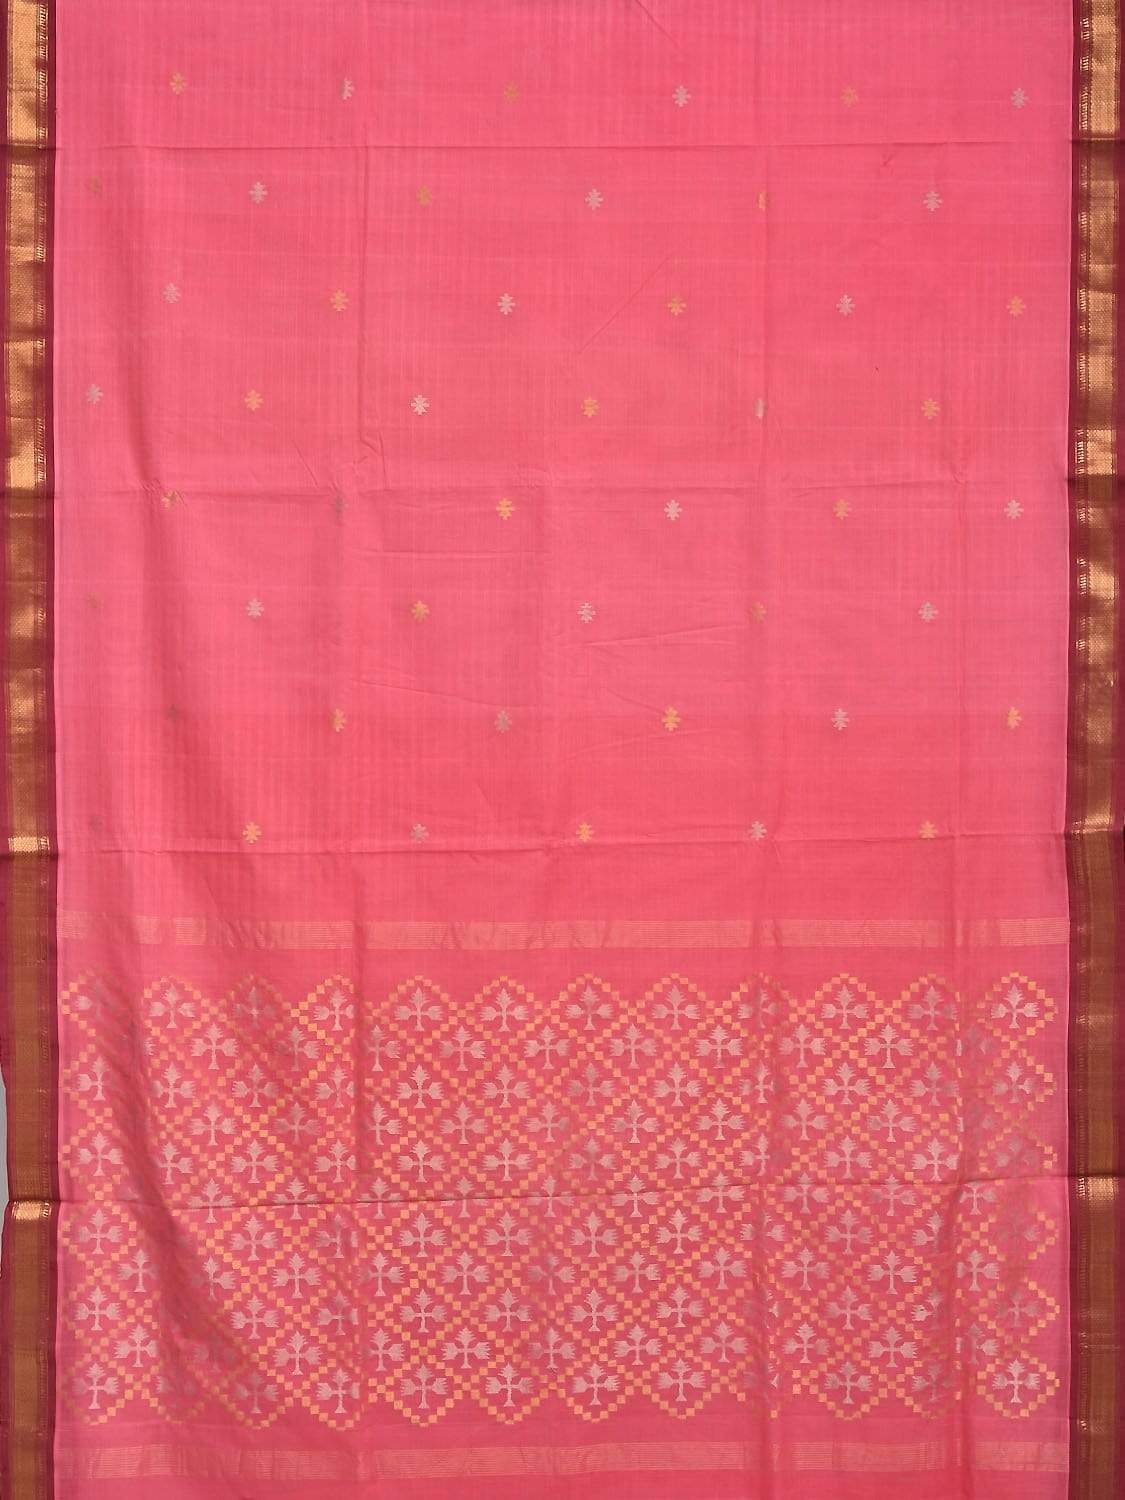 Baby Pink Uppada Cotton Handloom Saree with Jamdani Pallu and Traditional Border Design No Blouse u1578